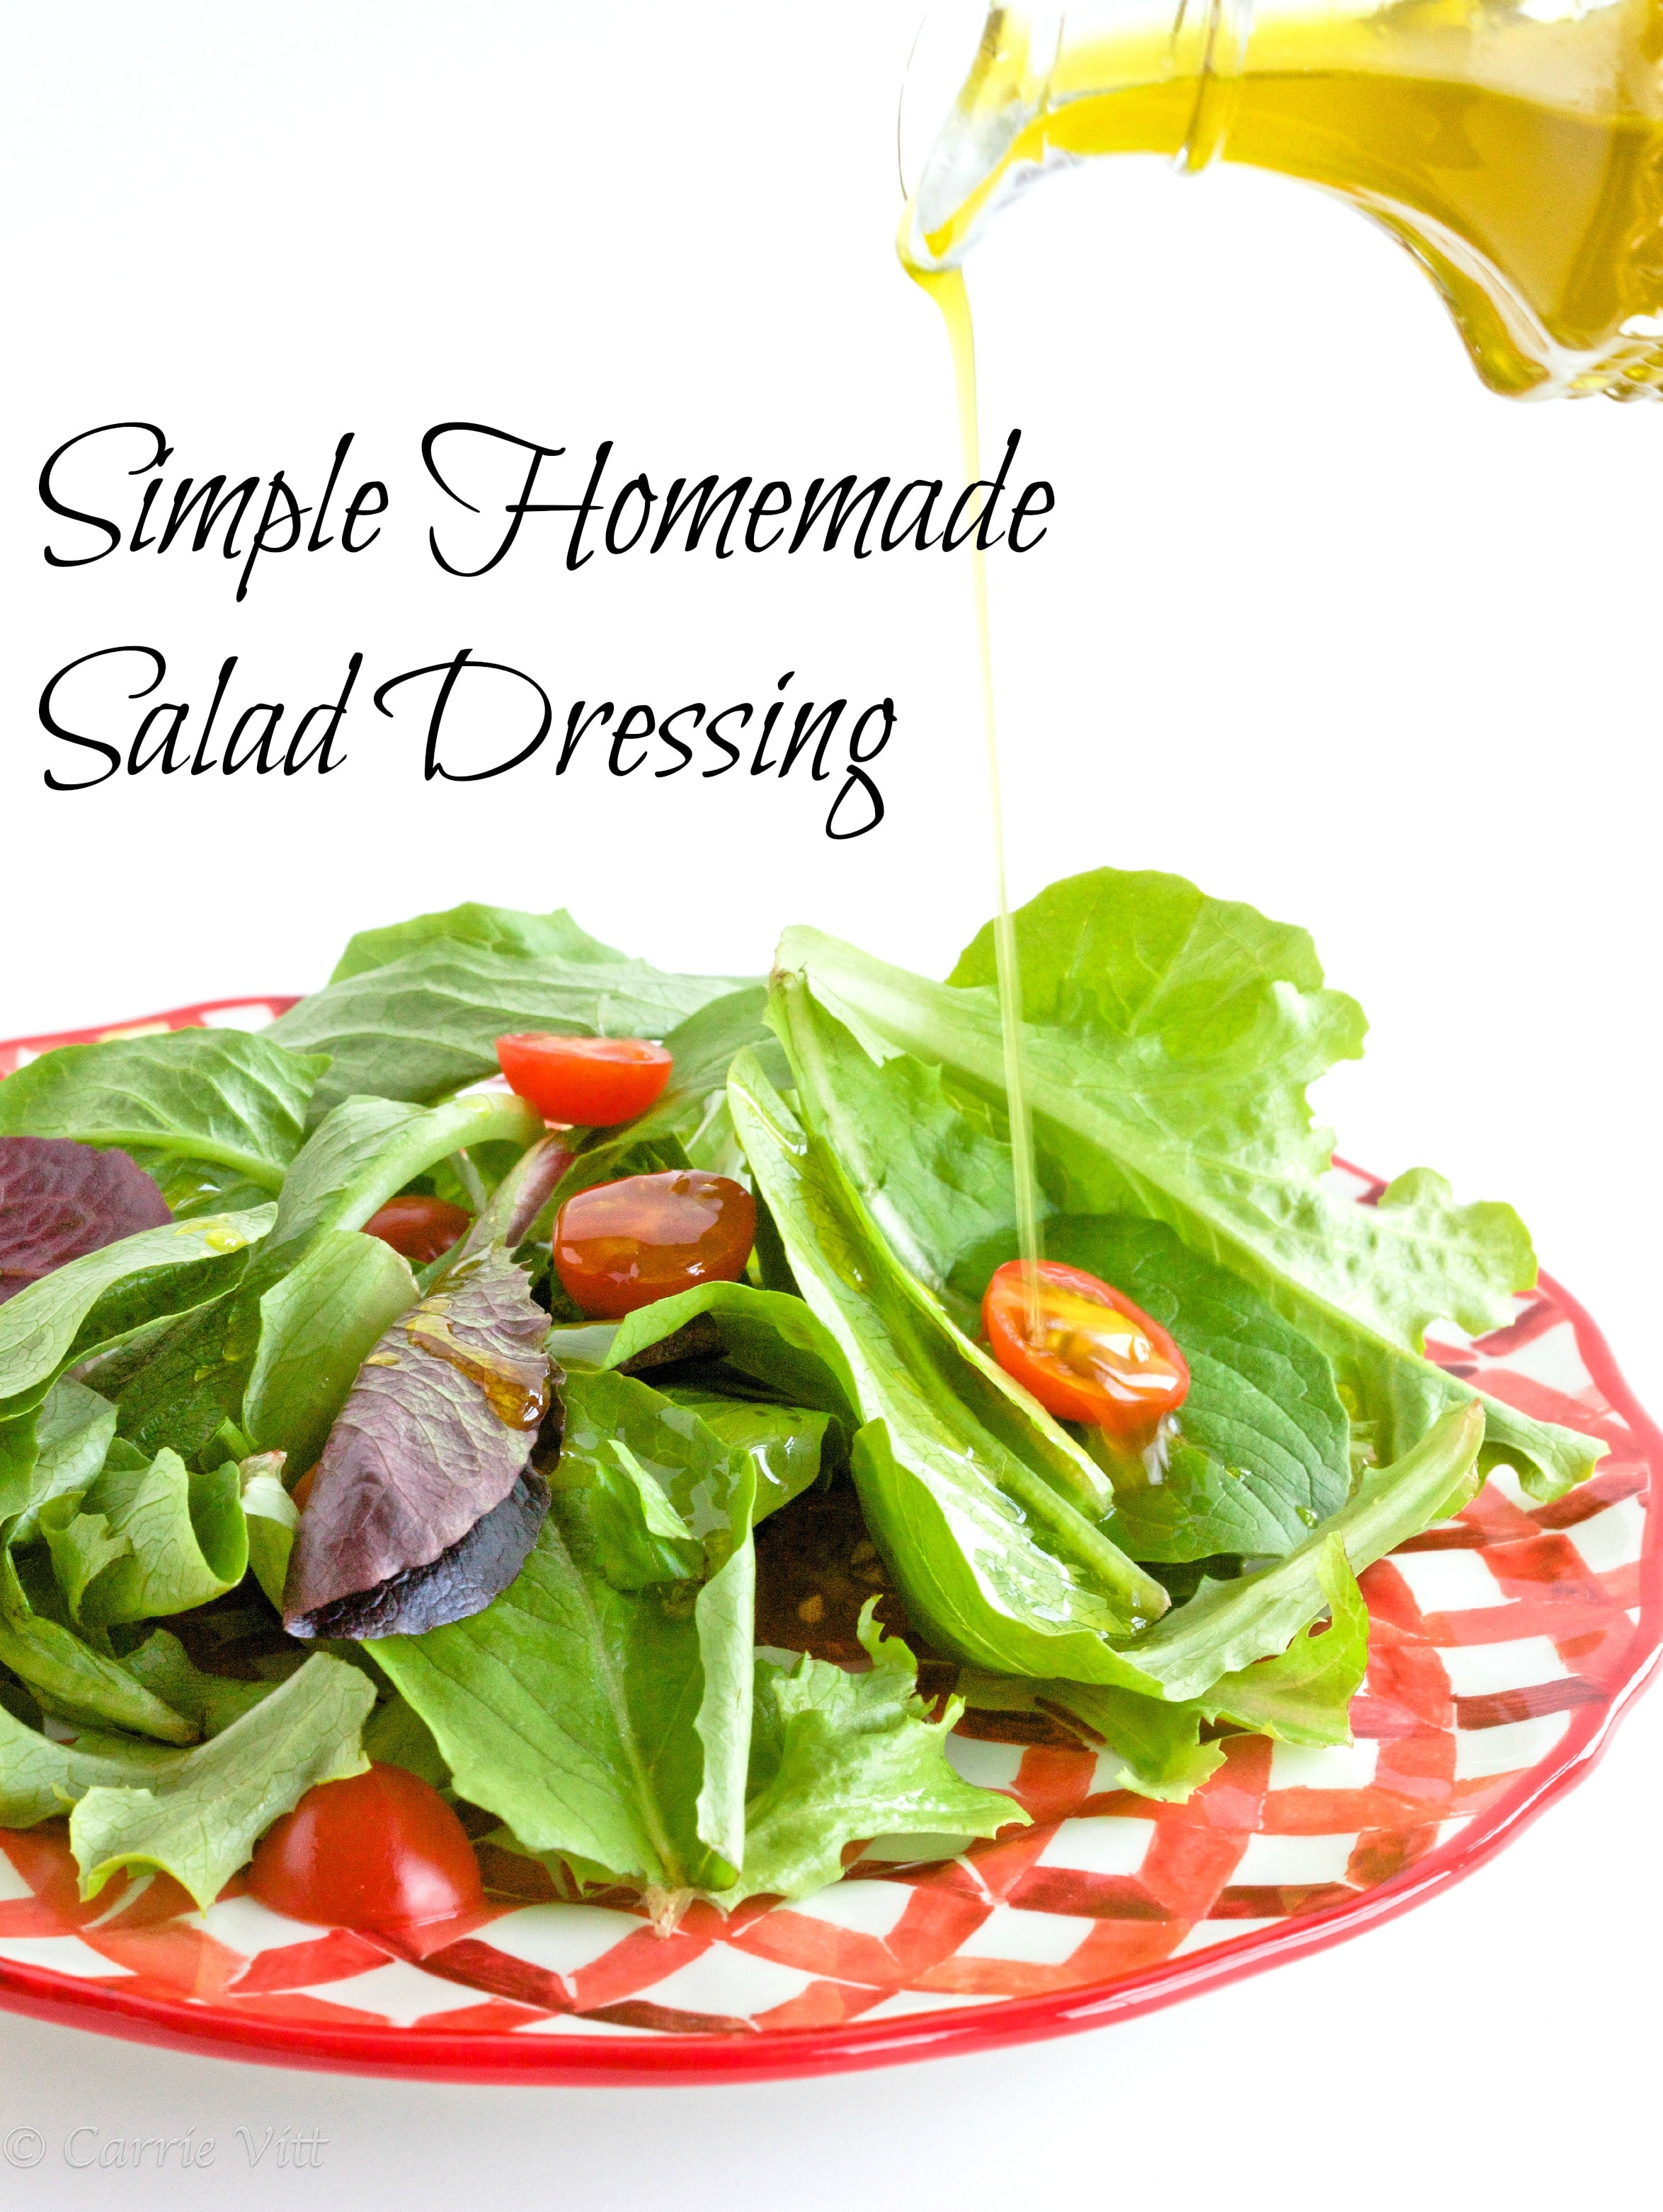 Simple Everyday Salad Dressing